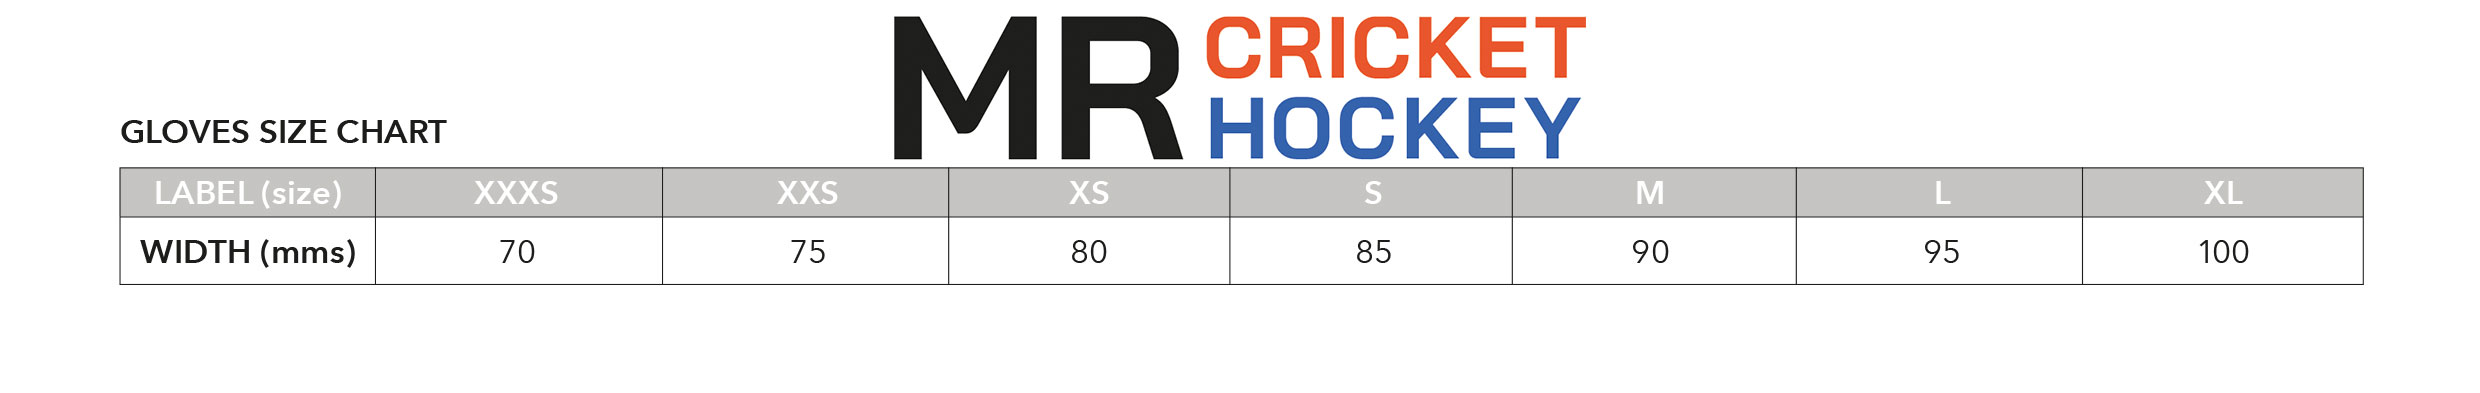 https://www.mrcrickethockey.com/wp-content/uploads/2019/07/Grays-Hockey-Glove-Size-Chart.jpg